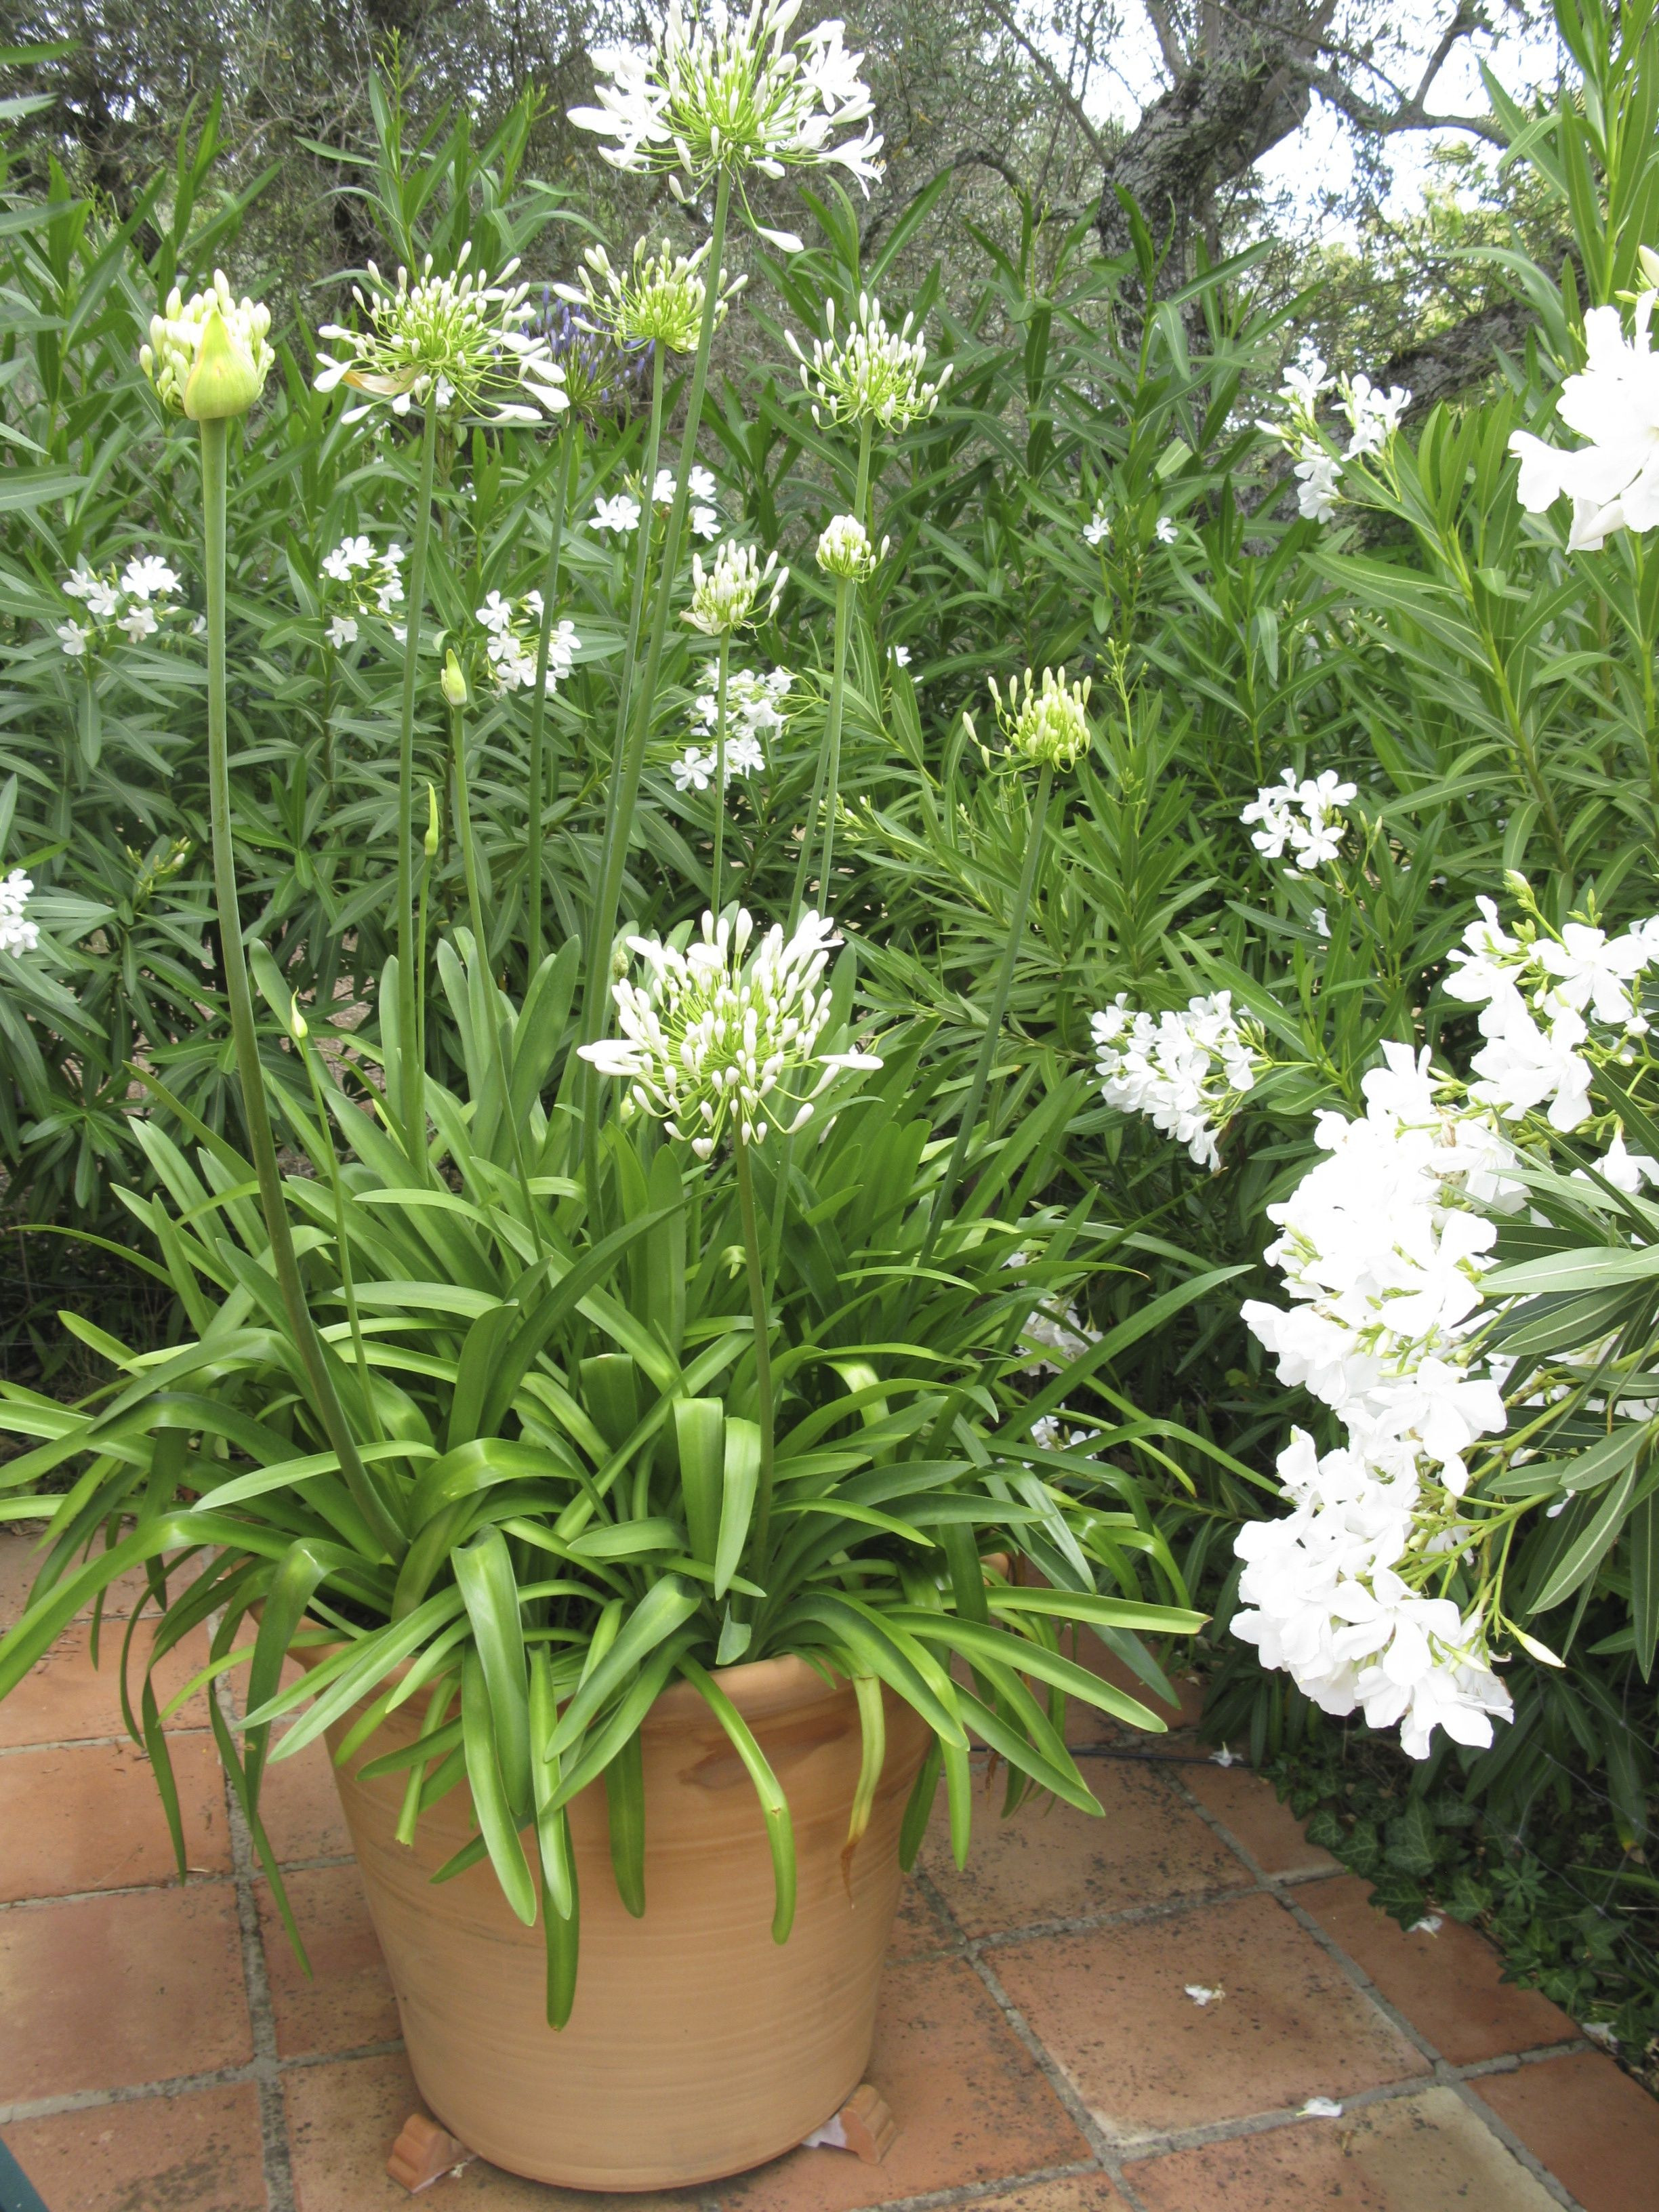 Down By The Pool, A Hedge Of White Oleander Helps